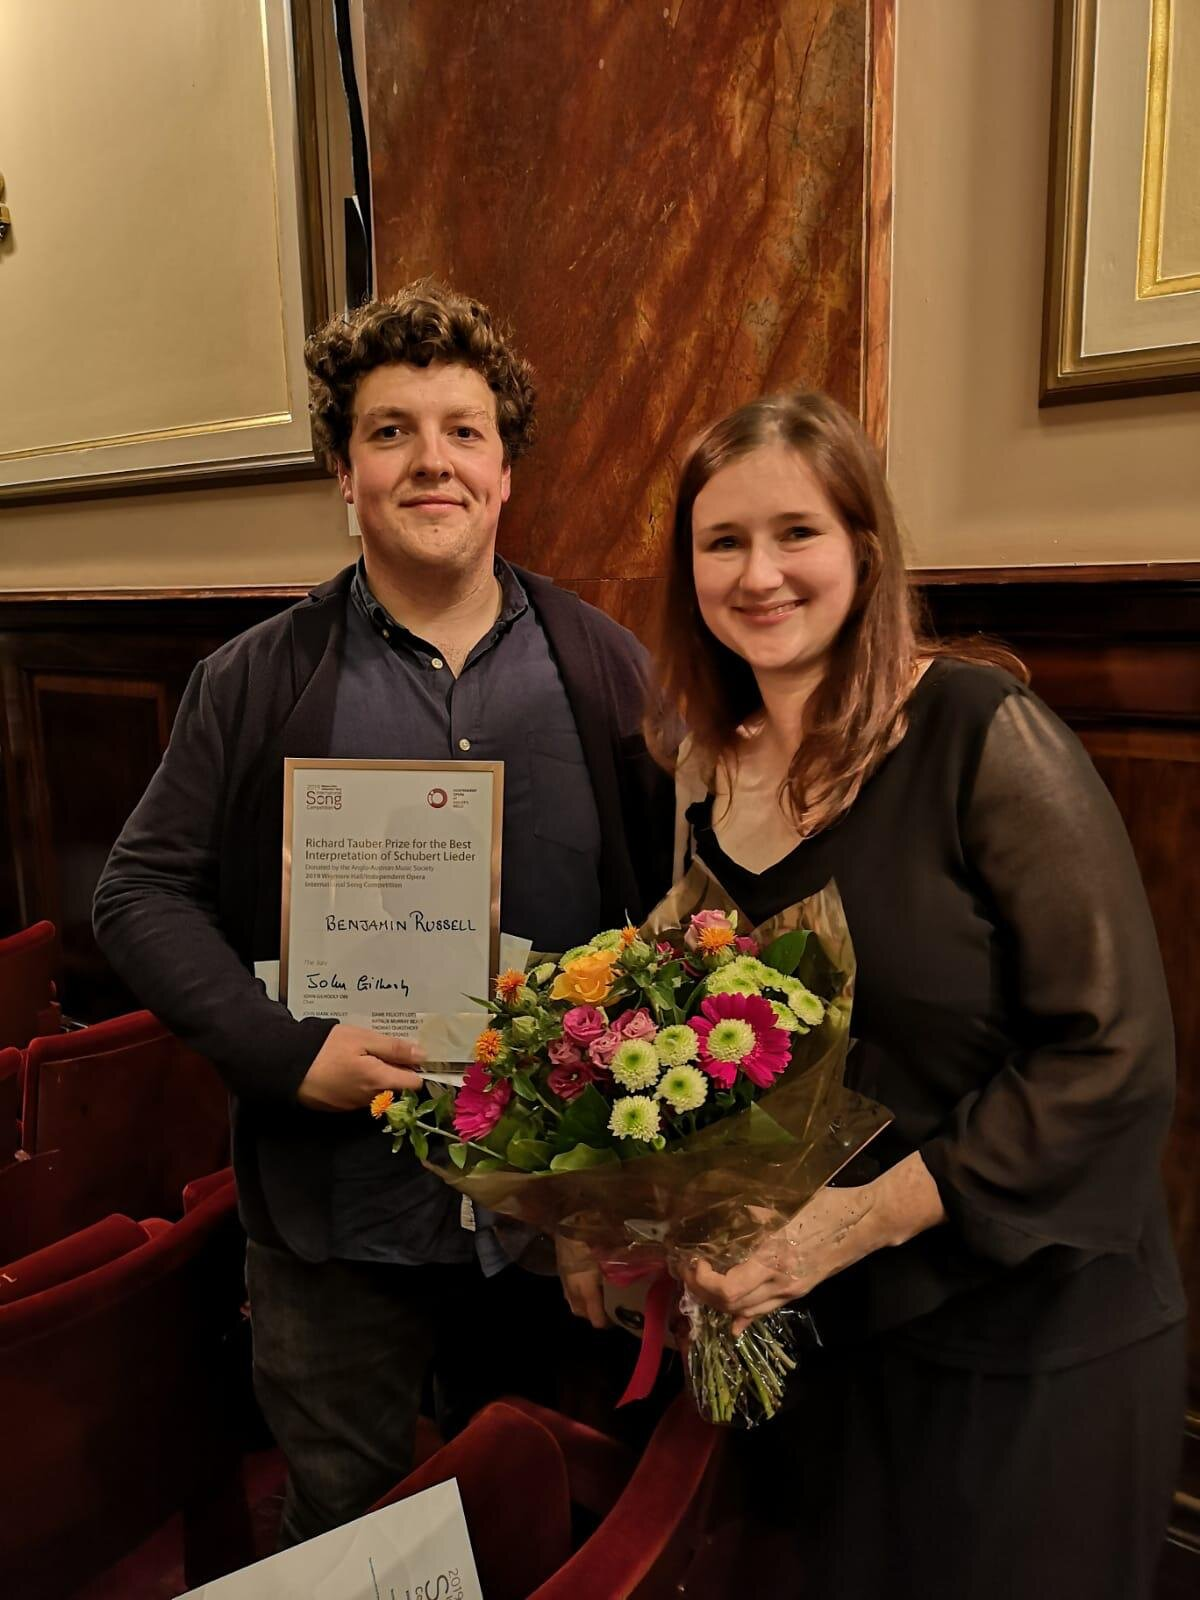 Manon and Benjamin at the Prize Ceremony - 11th Sep 2019